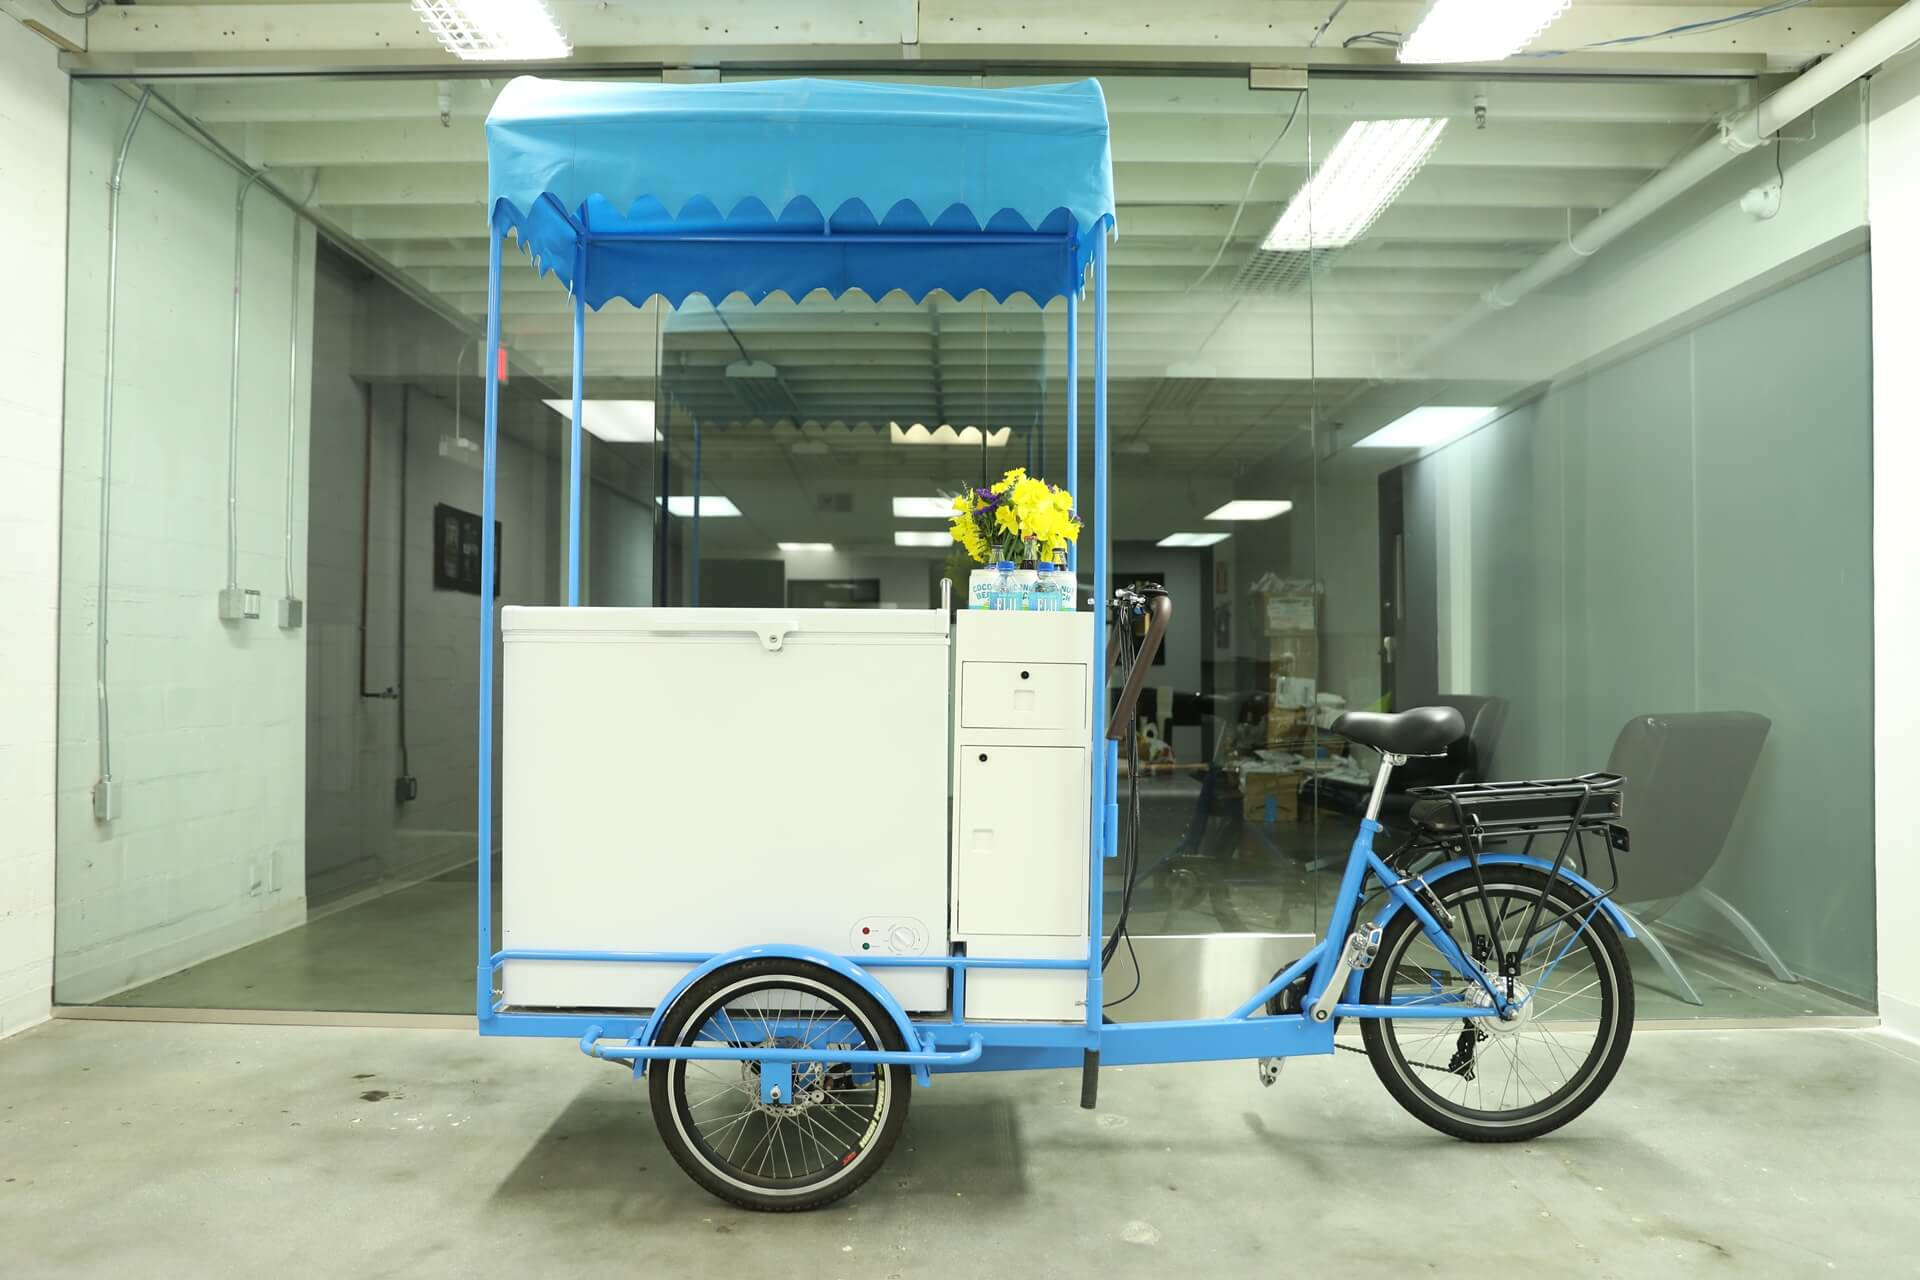 Used ice cream carts in vending bikes business for Architecture firm for sale